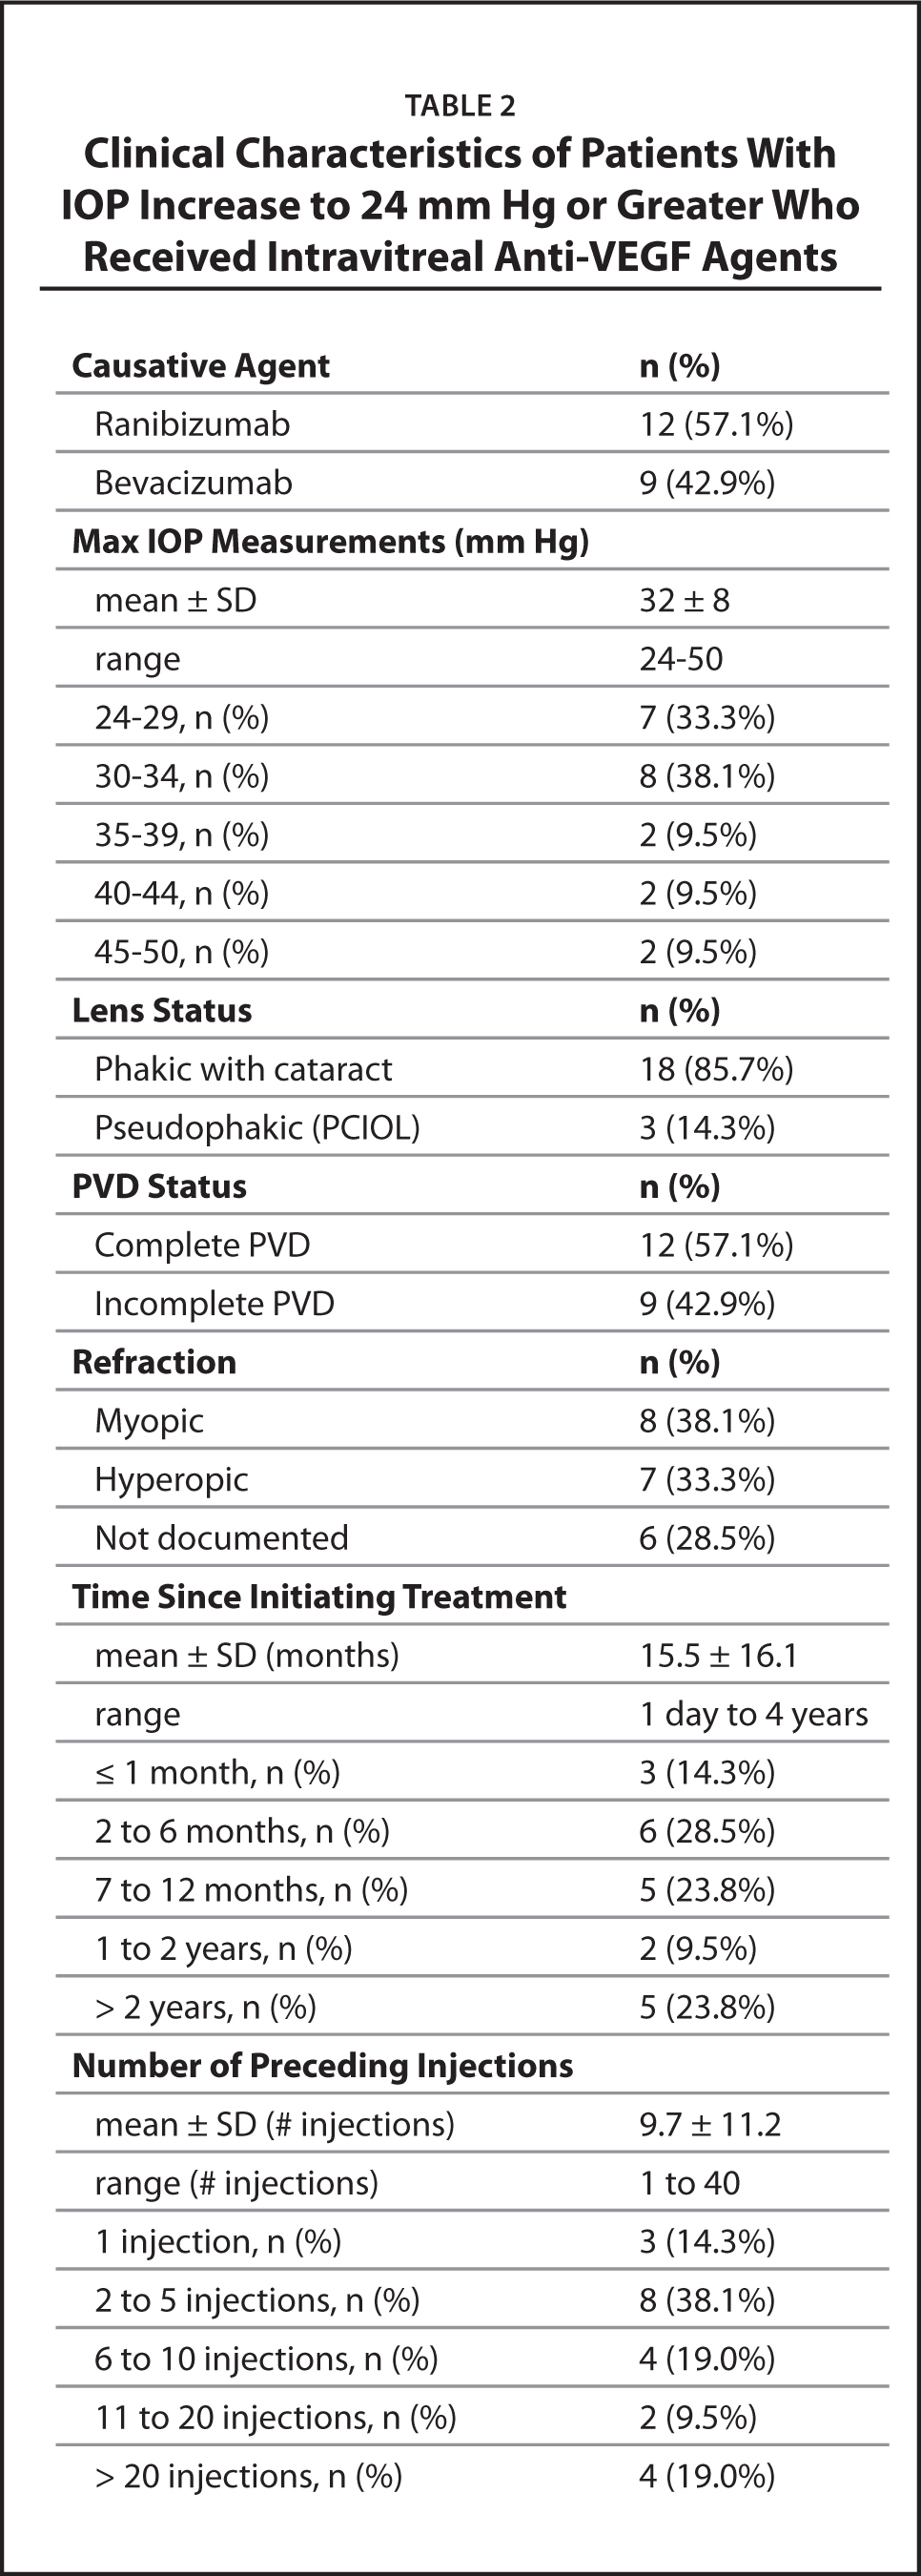 Clinical Characteristics of Patients With IOP Increase to 24 mm Hg or Greater Who Received Intravitreal Anti-VEGF Agents